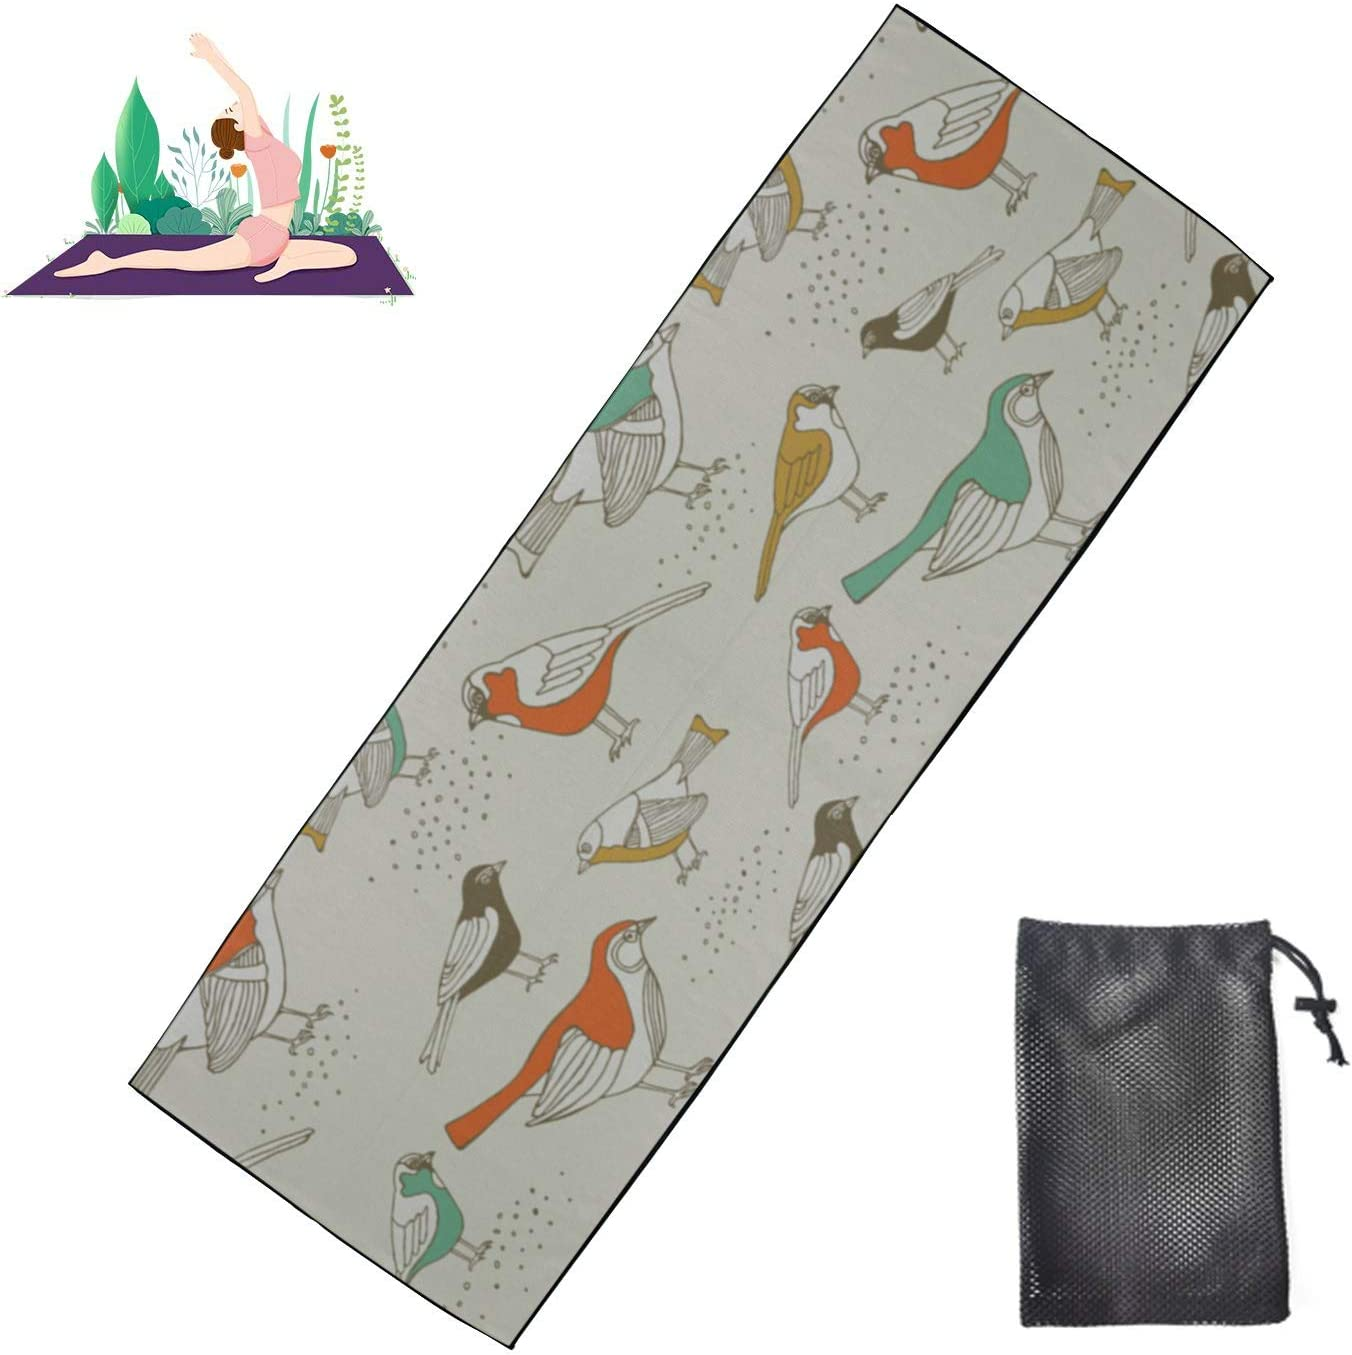 Huqalh Non-Slip Yoga Mat Towel Cute Spring Retro Bird Max 49% OFF Love New products, world's highest quality popular! Paper